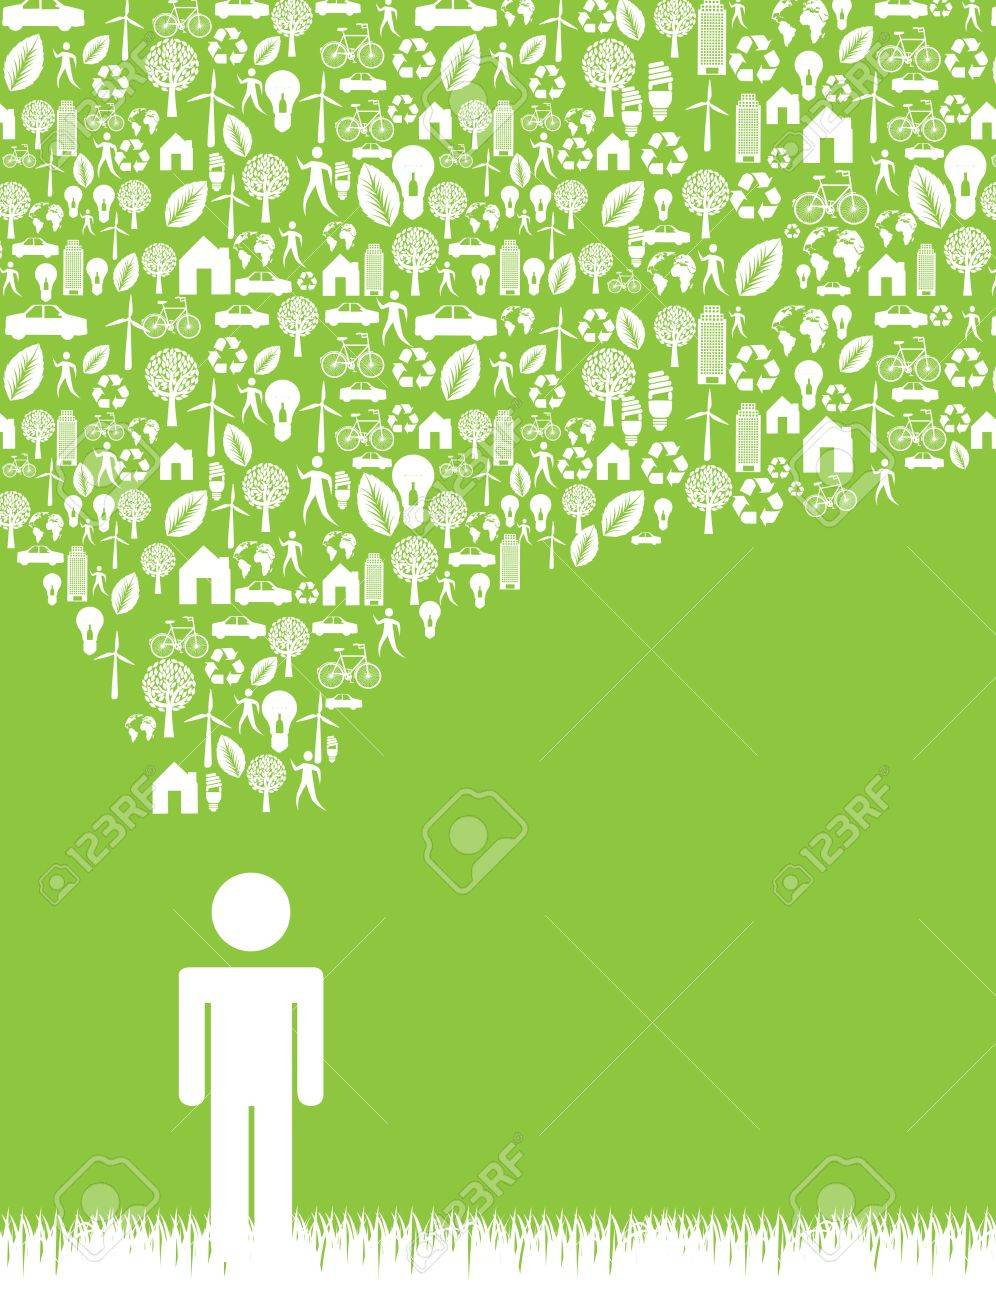 Think green icon over green background vector illustration Stock Vector - 17428371